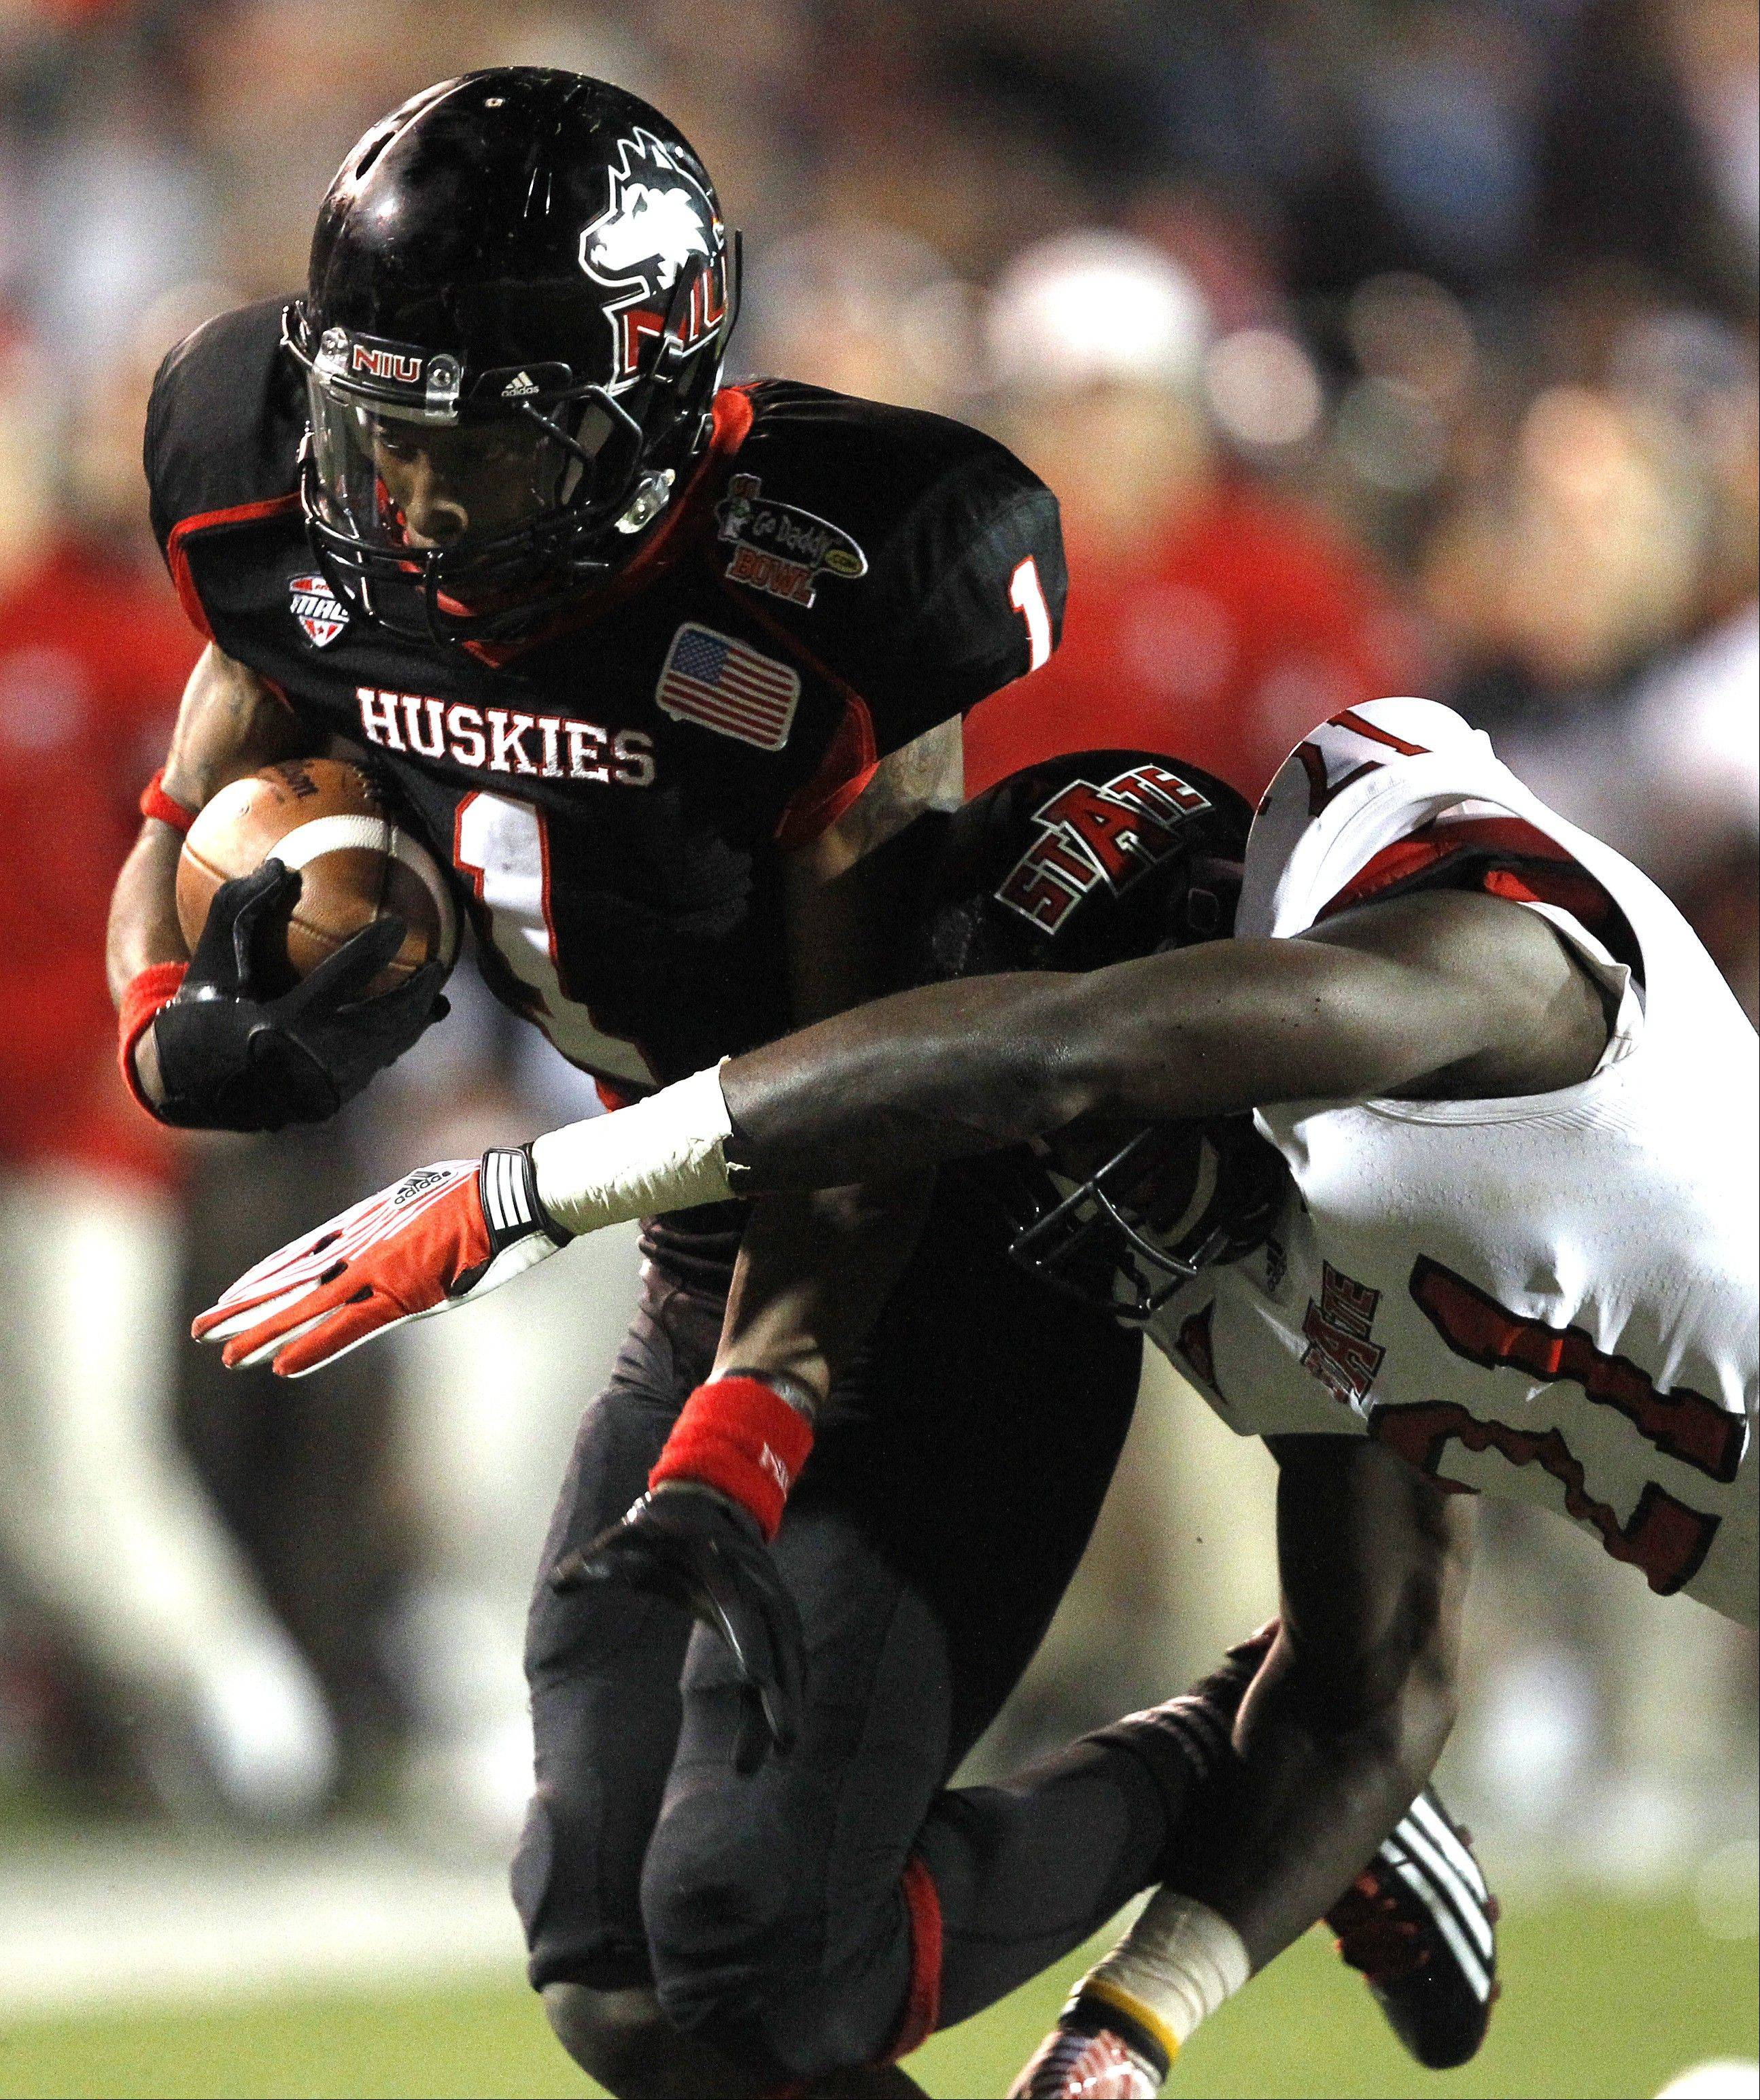 Northern Illinois will be counting on wide receiver Martel Moore, here catching a pass in the Go Daddy Bowl last January, to help get the offense rolling under new starter Jordan Lynch.